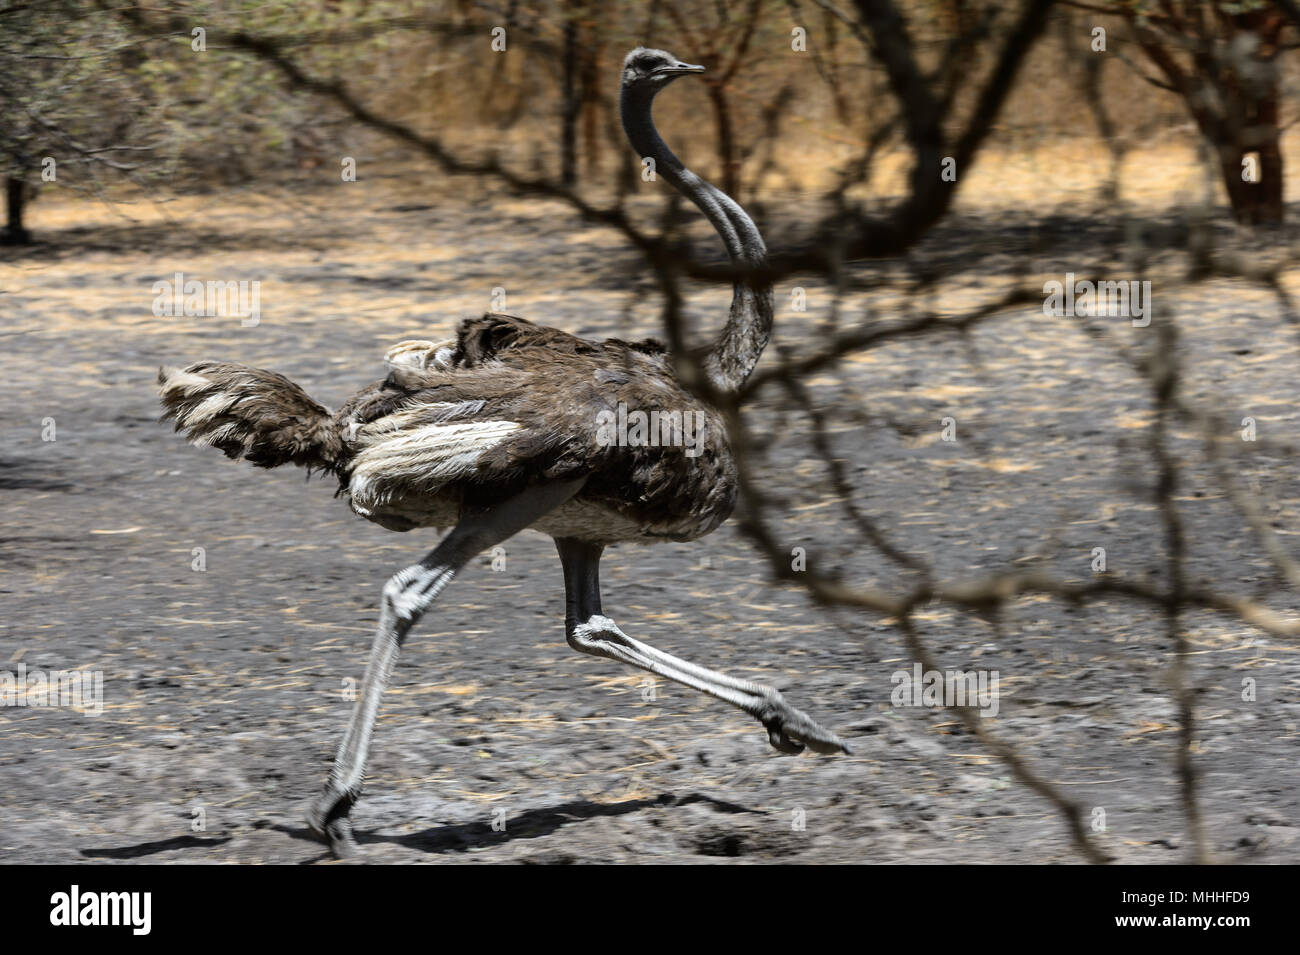 Ostrich runs over the ground in Senegal - Stock Image